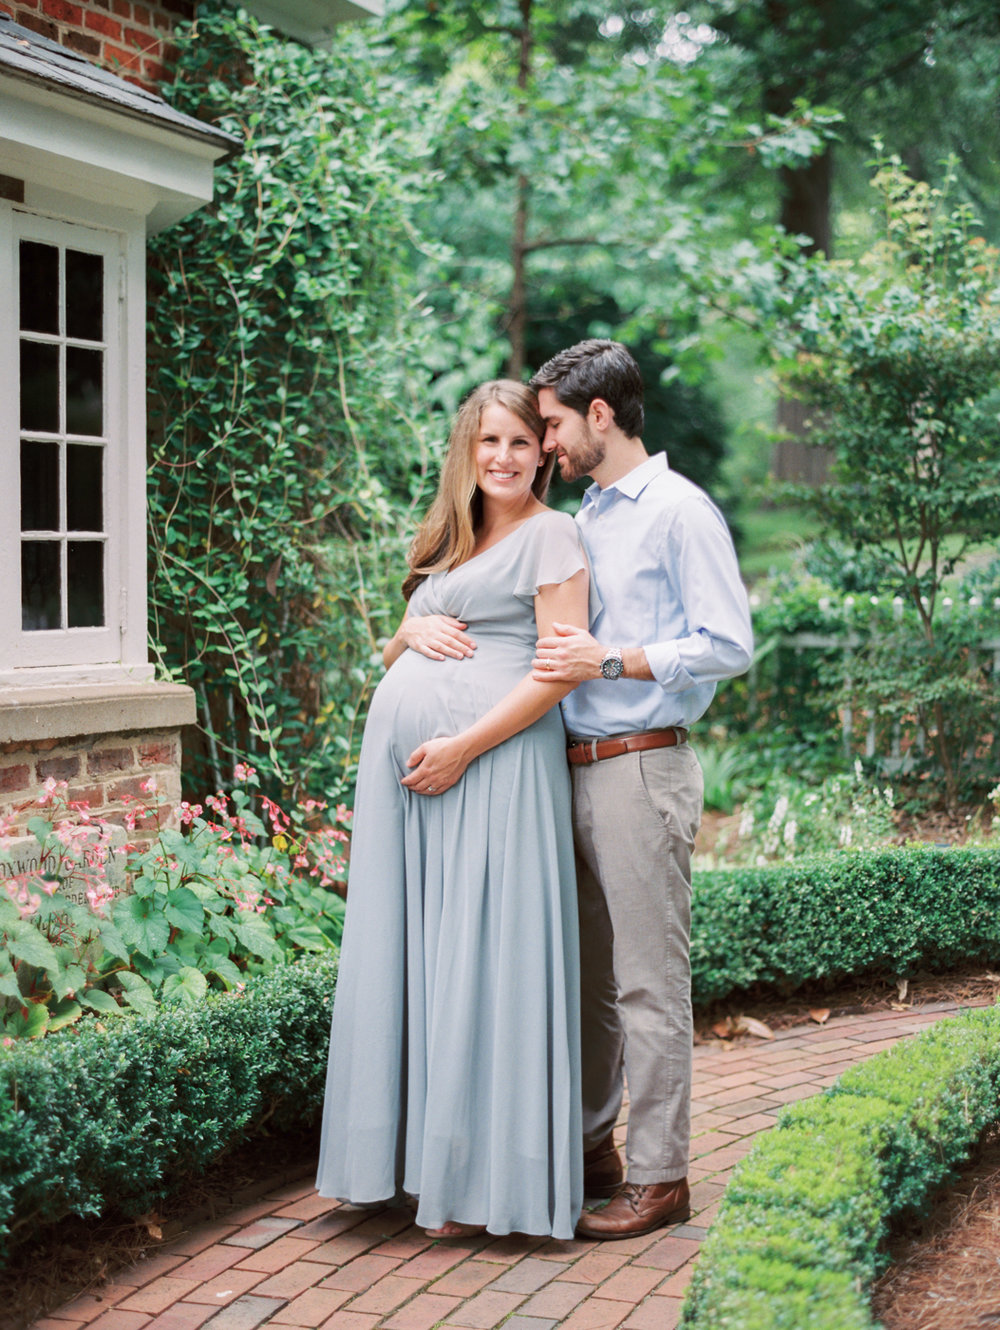 shackleford maternity four corners photography athens maternity photographer anna shackleford photography atlanta film photographer maternity photography-16.jpg